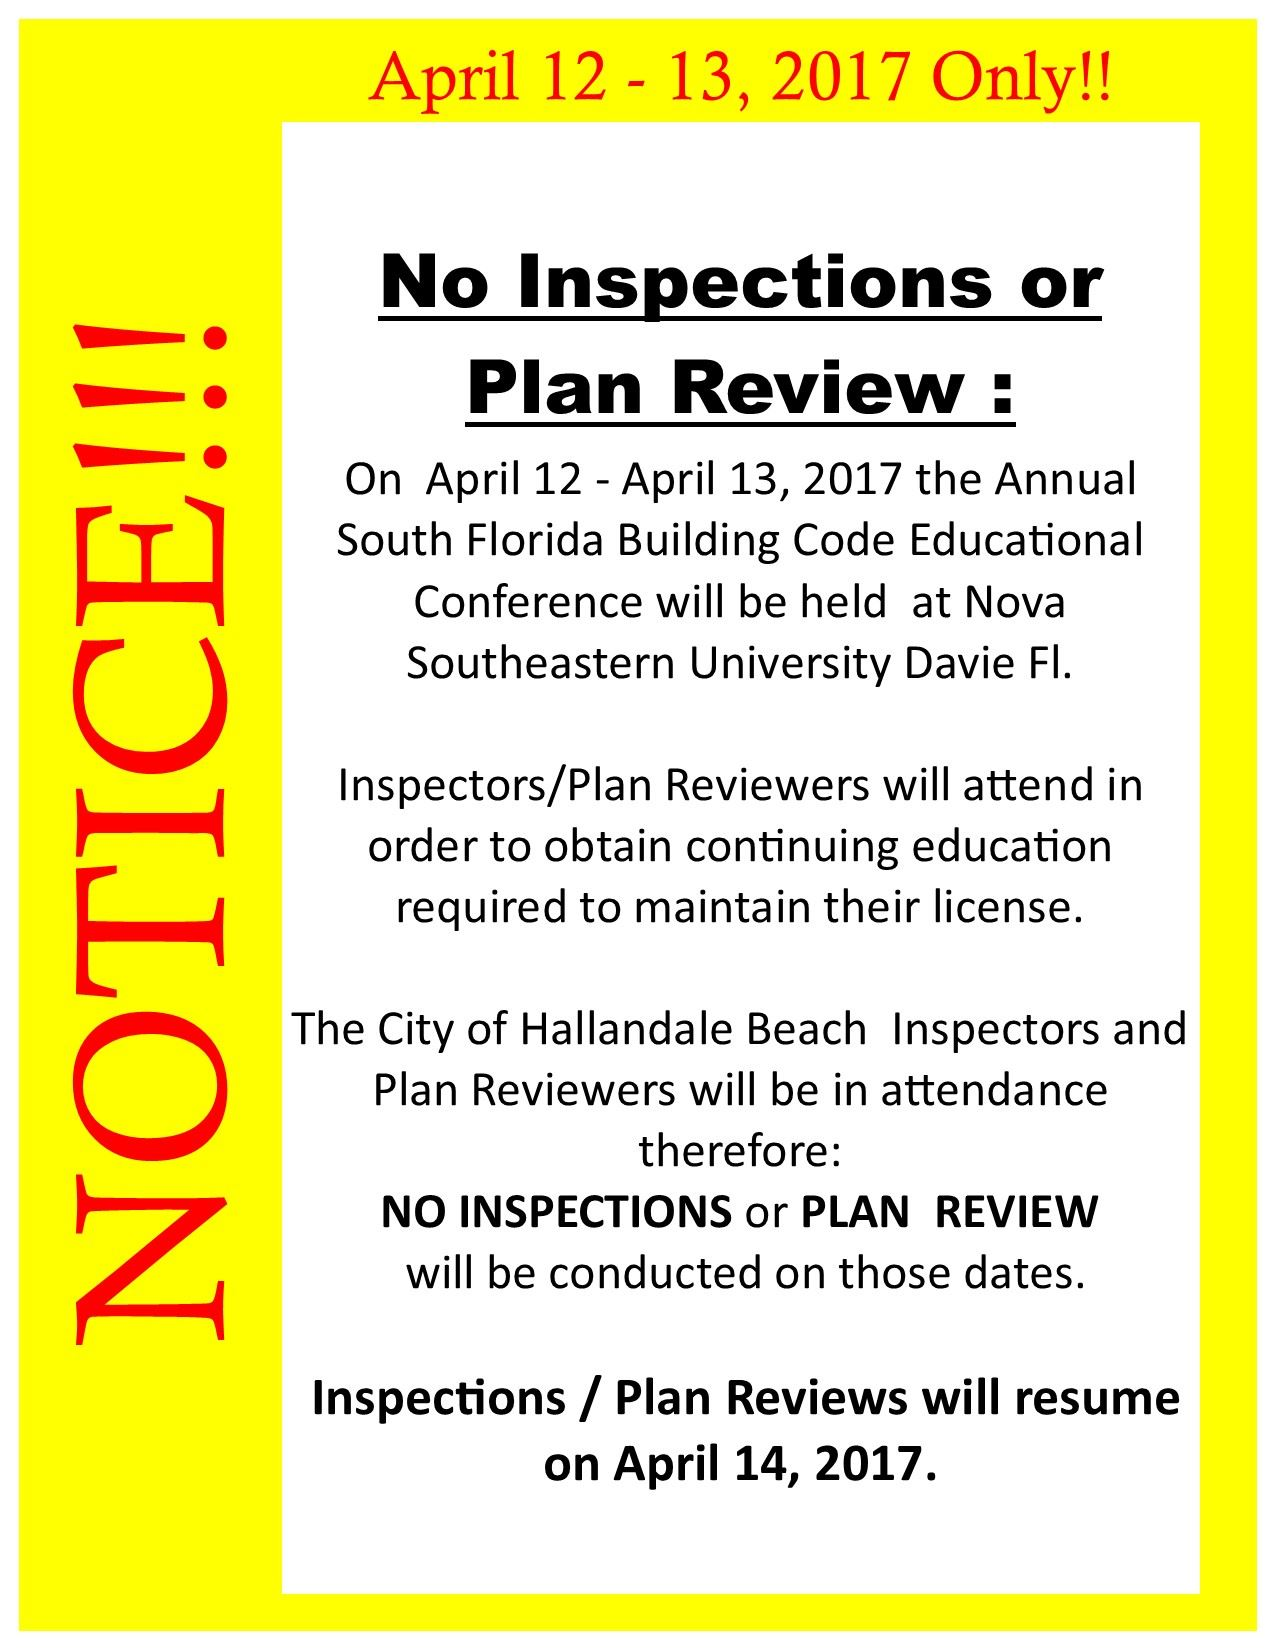 Due to the 2017 Annual South Florida Building Code Educational Conference, NO Inspections or Plan Re